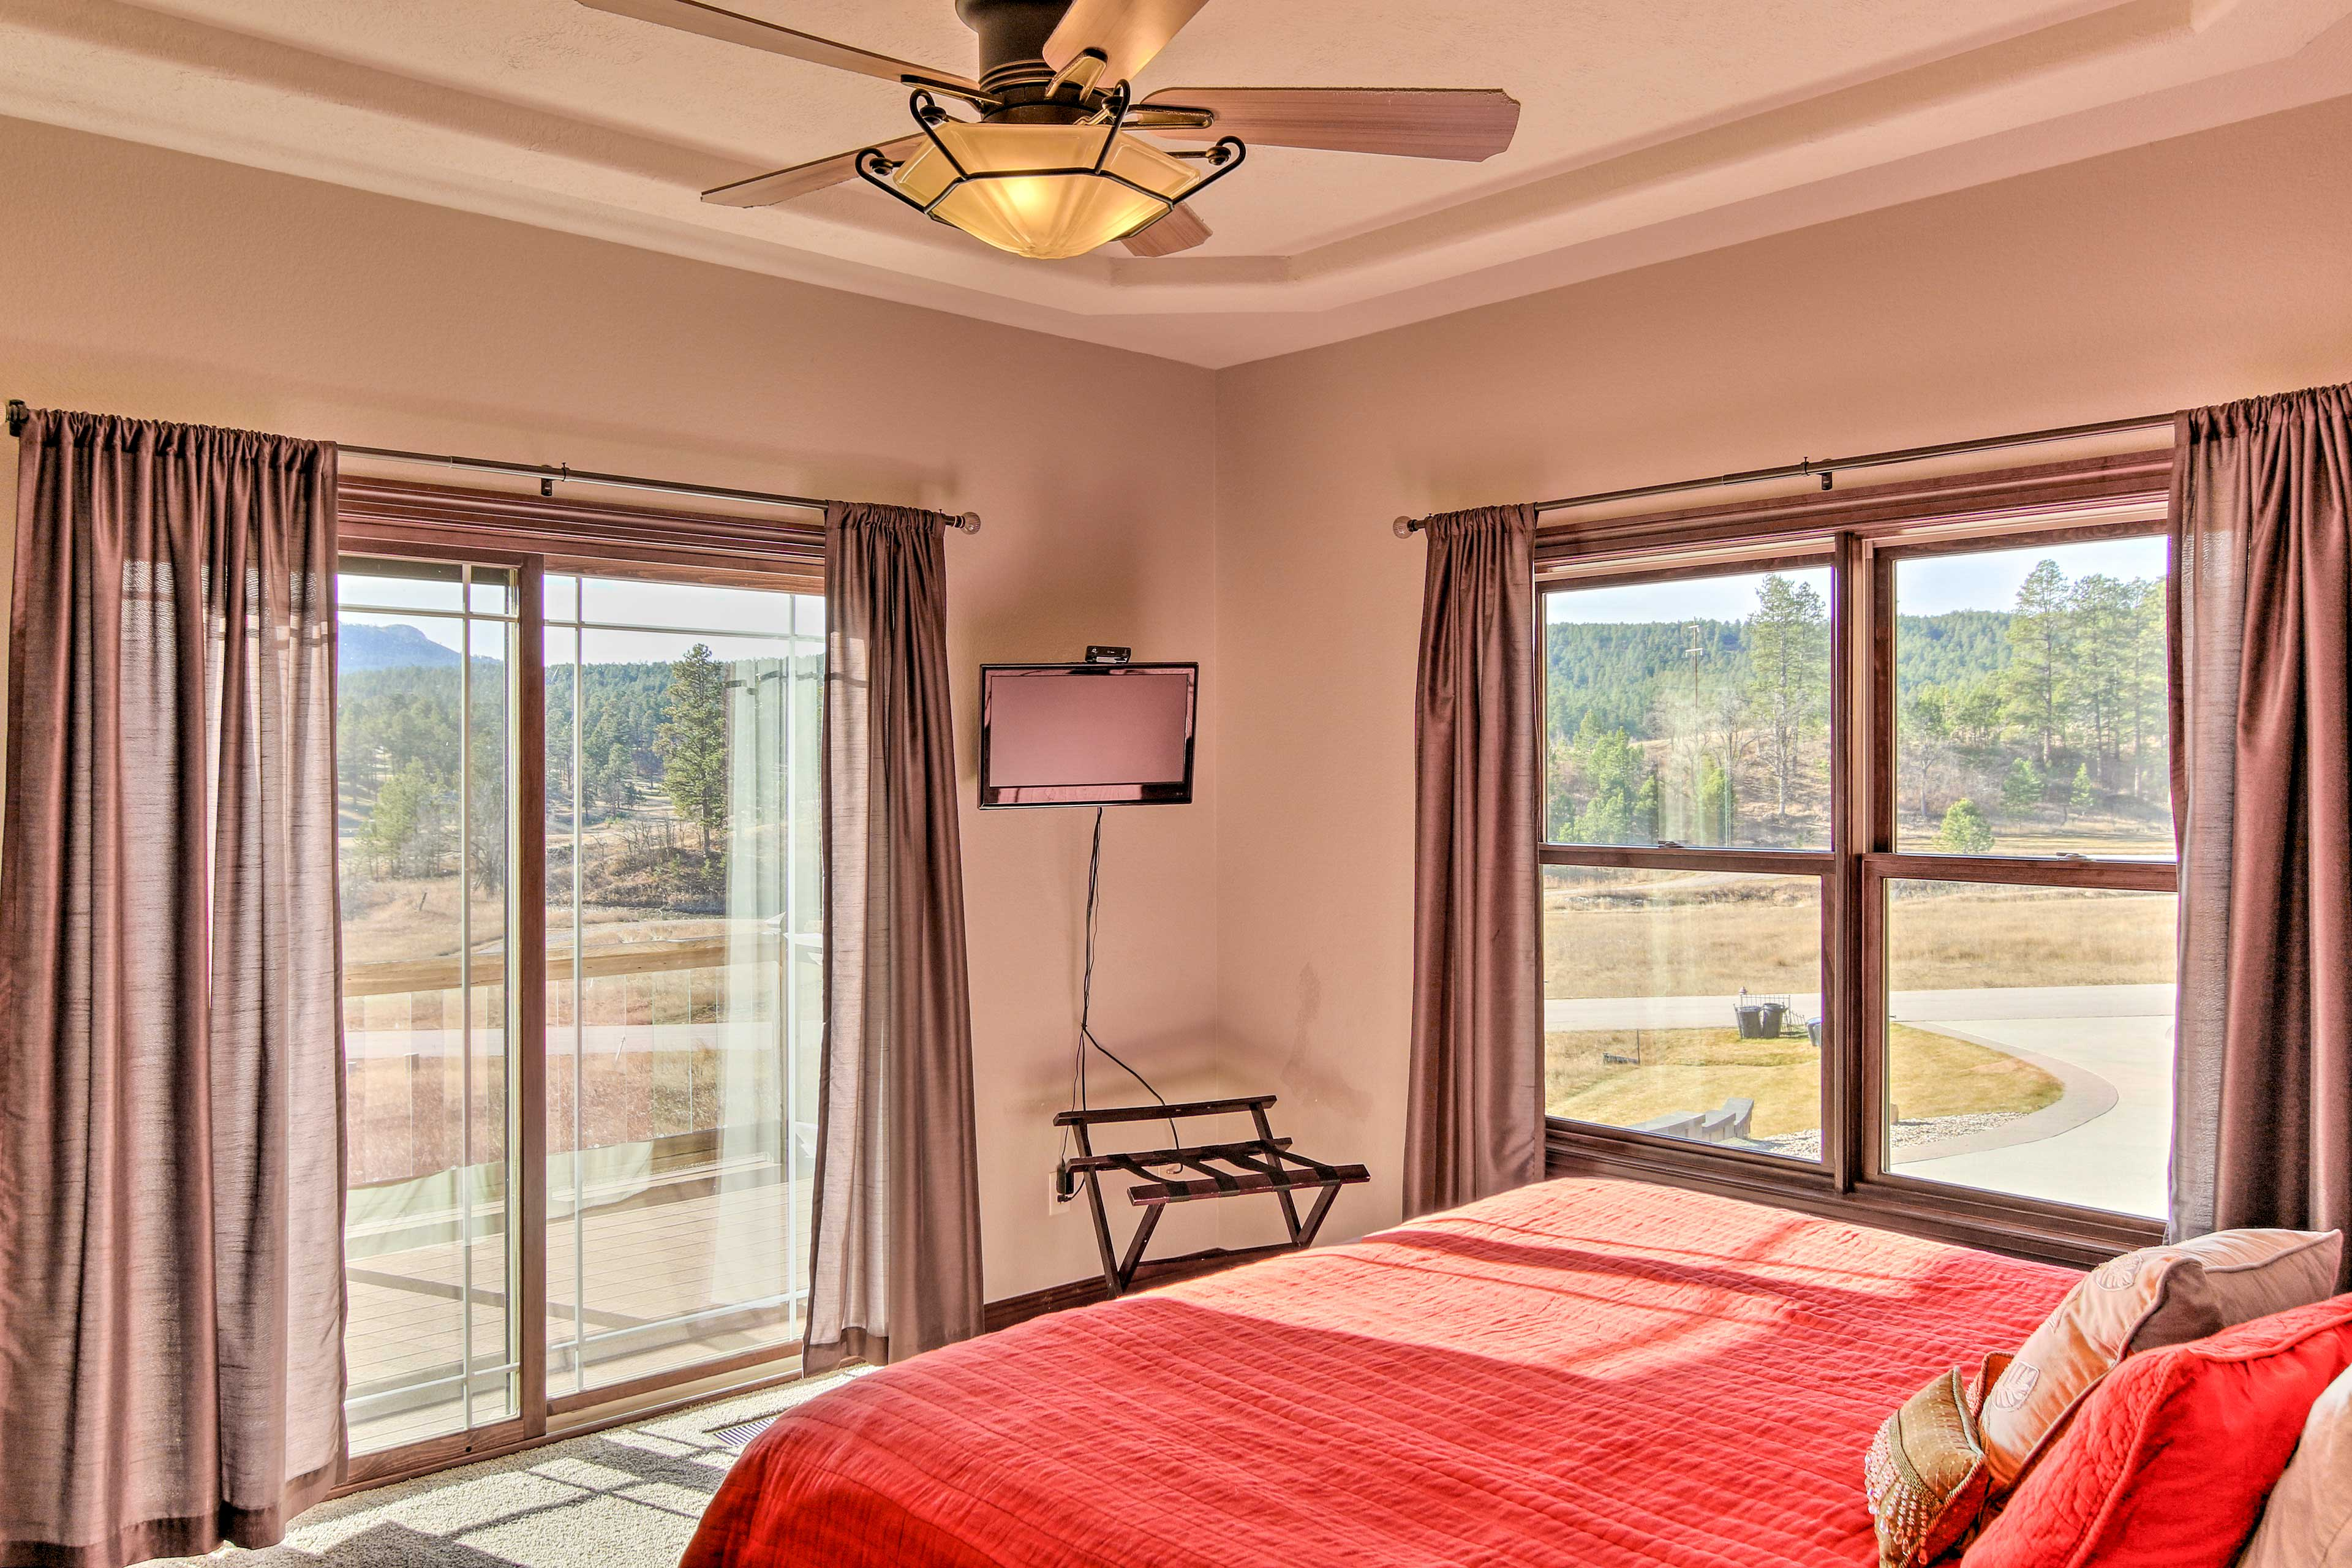 The home includes 5 bedrooms to comfortably accommodate friends and family!